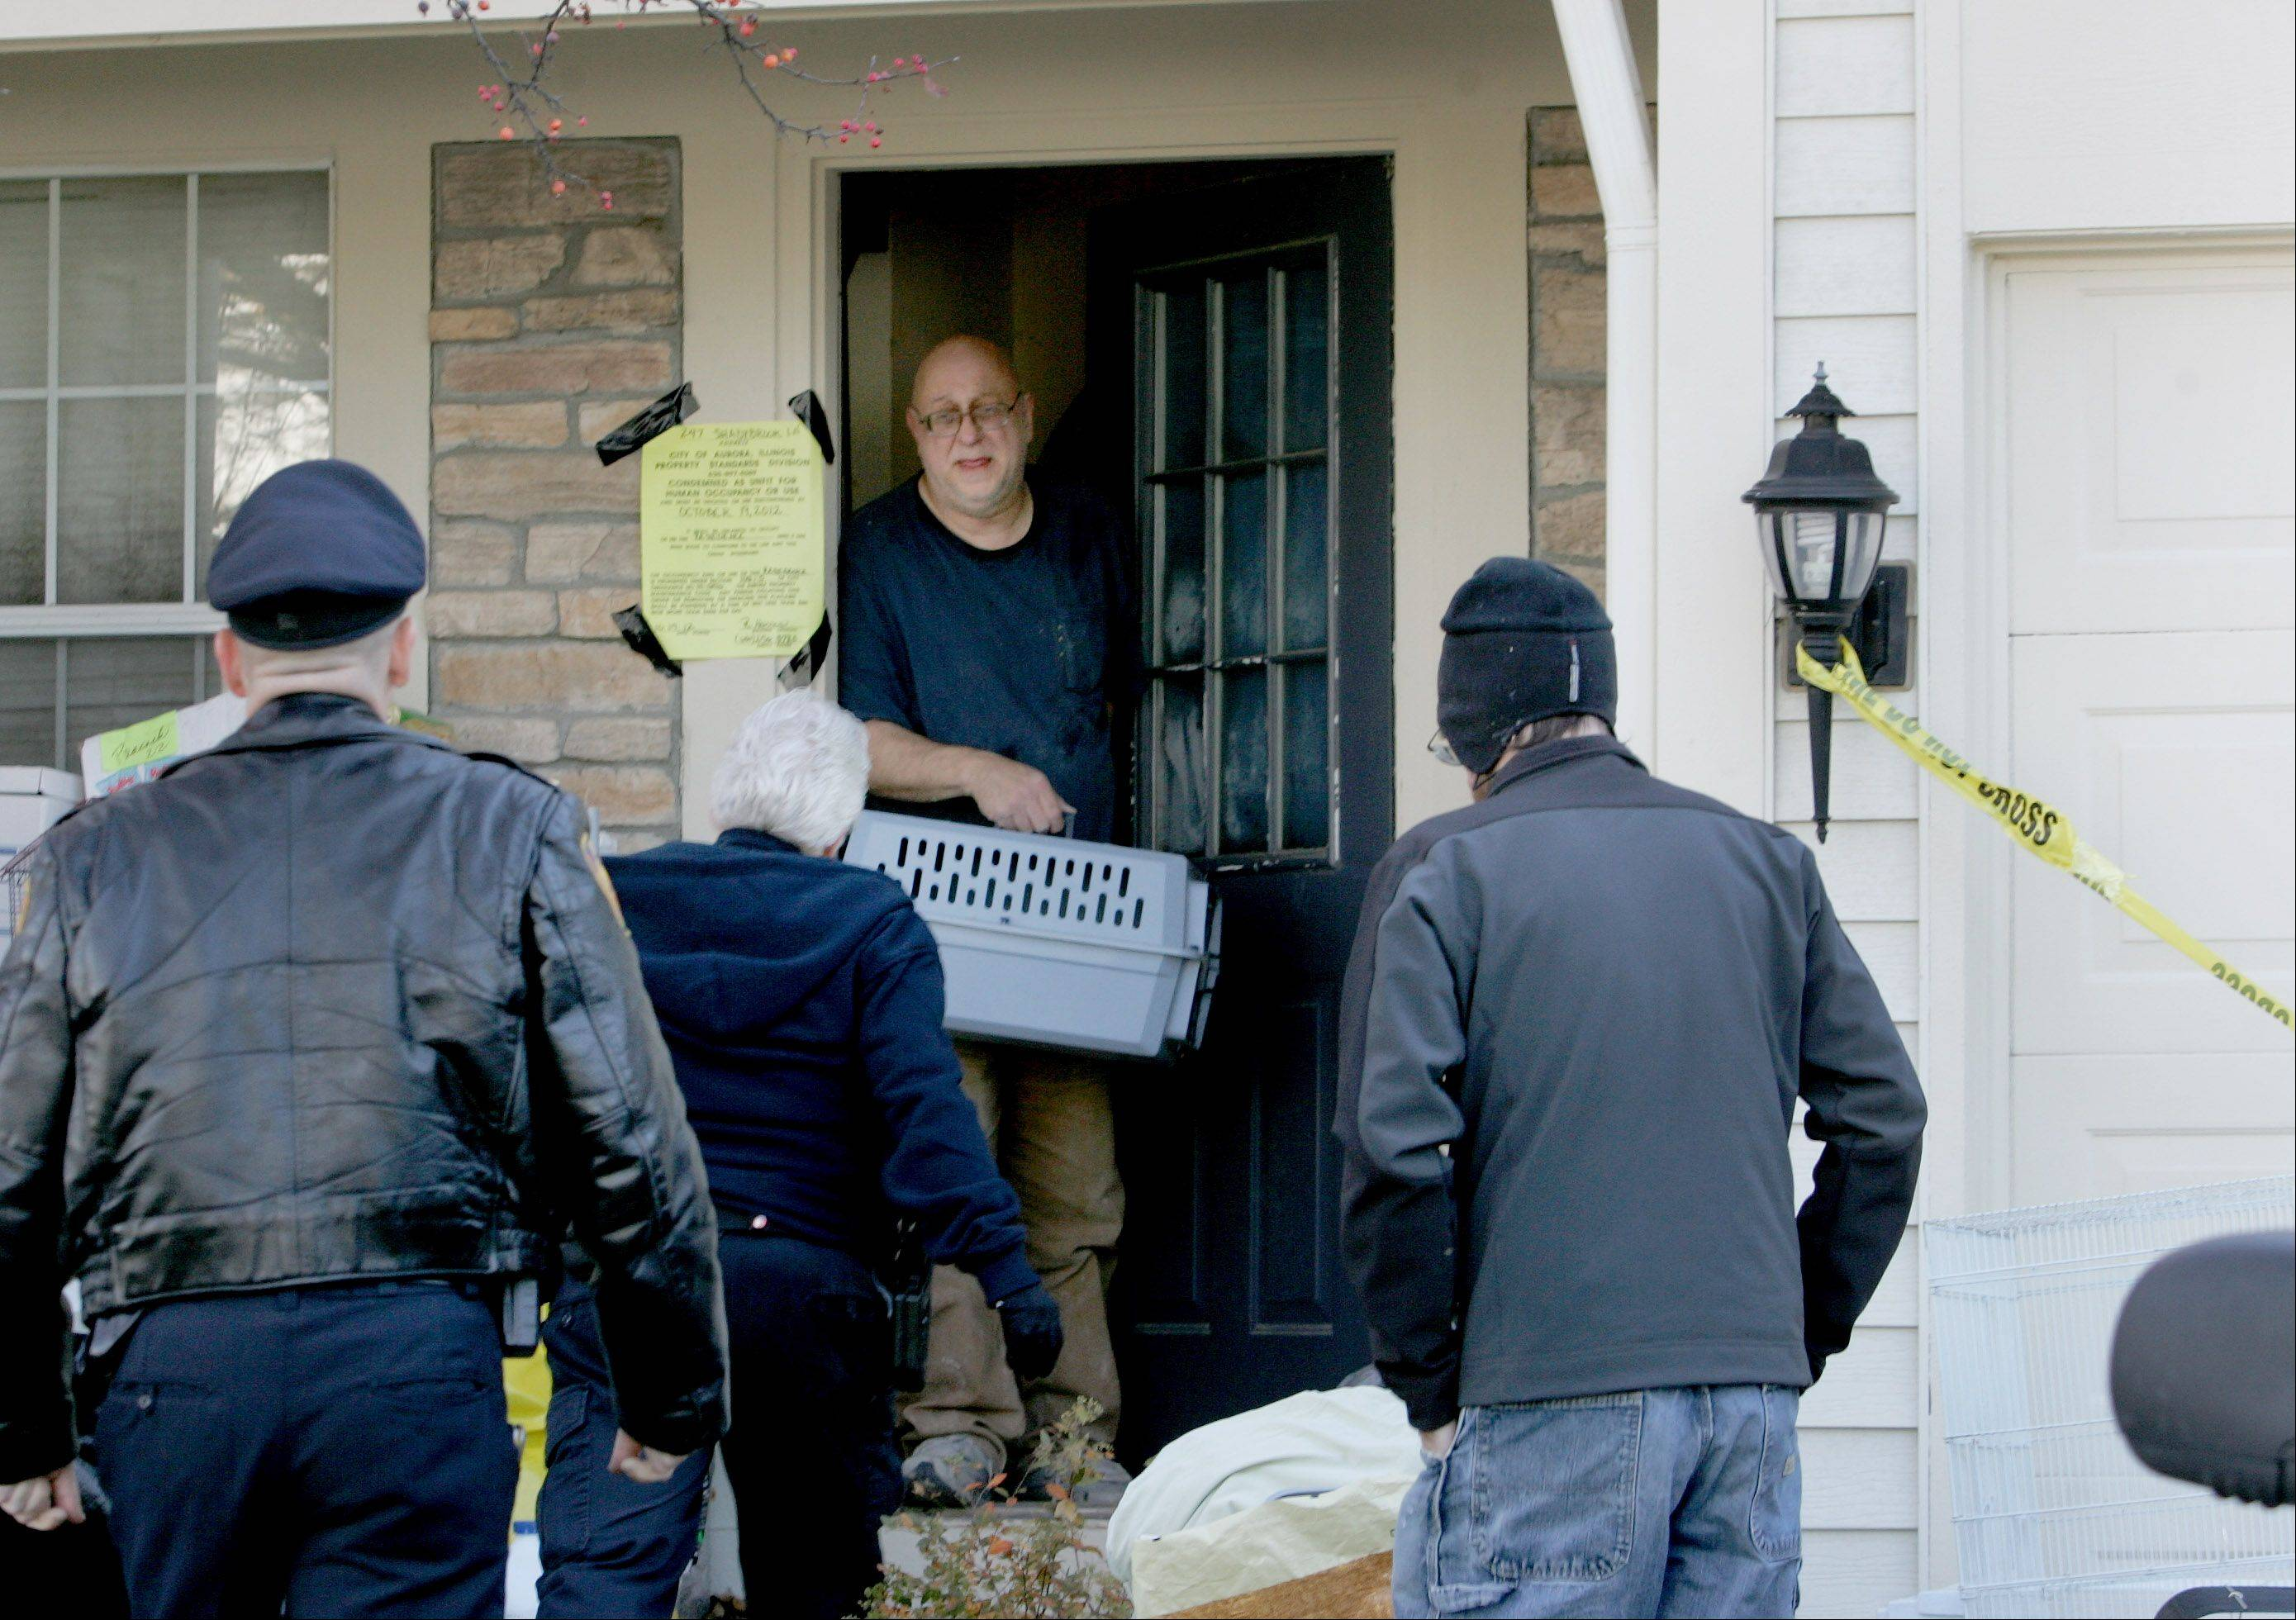 Homeowner Dave Skeberdis brings out a caged bird to give to the Greater Chicago Chicago Cage Bird Club before the city of Aurora took over the cleanup of his house on Friday.